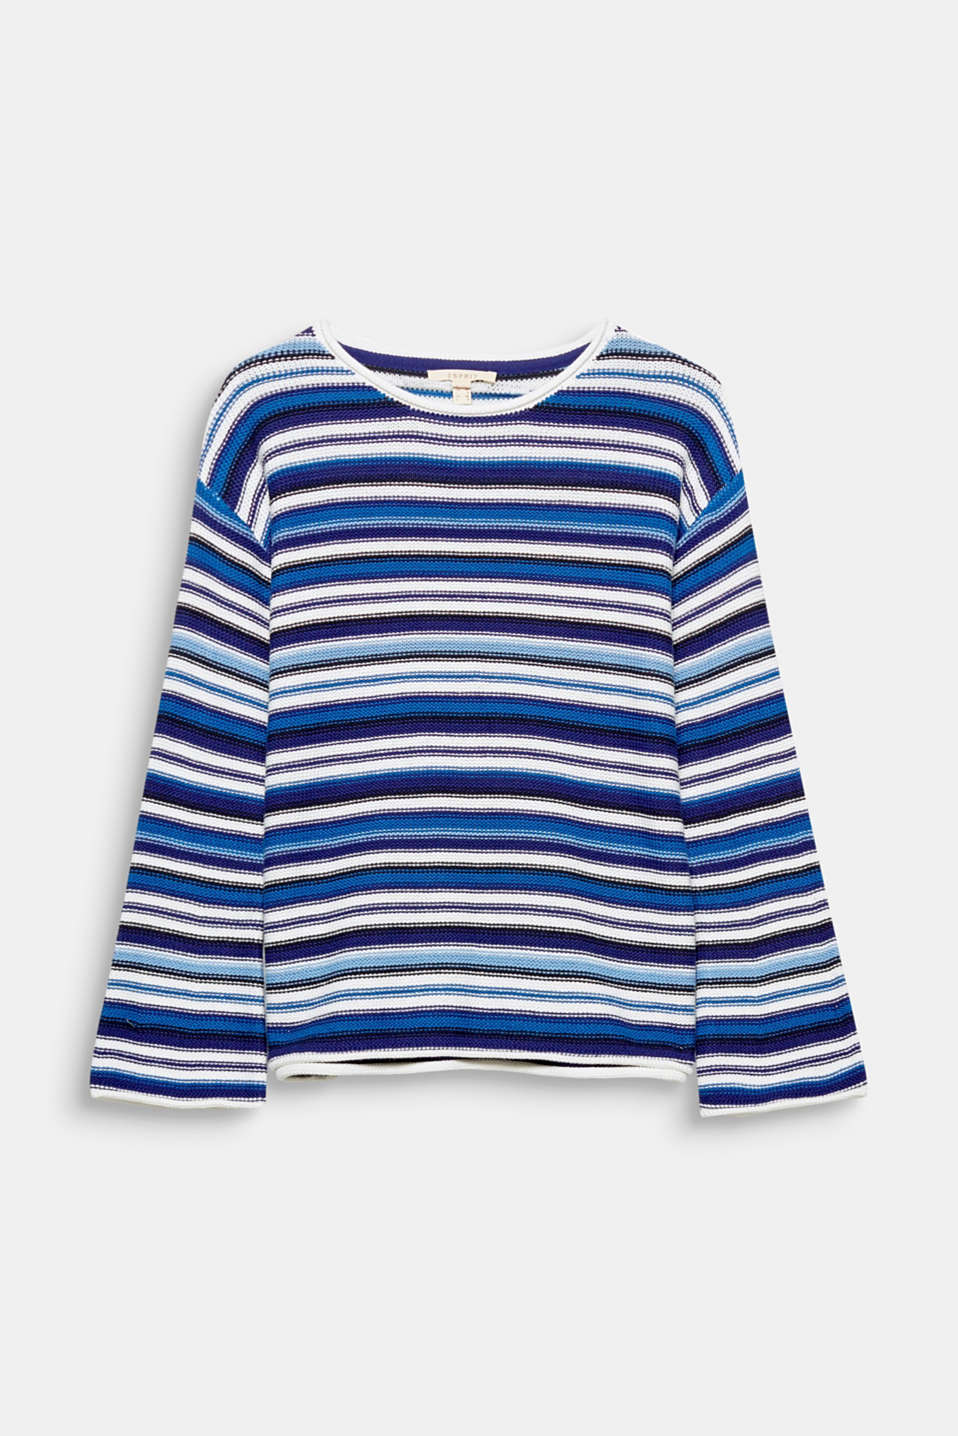 Be it plain, striped or with a logo: this blended cotton jumper scores points with its casual cut and stylish sleeve design!